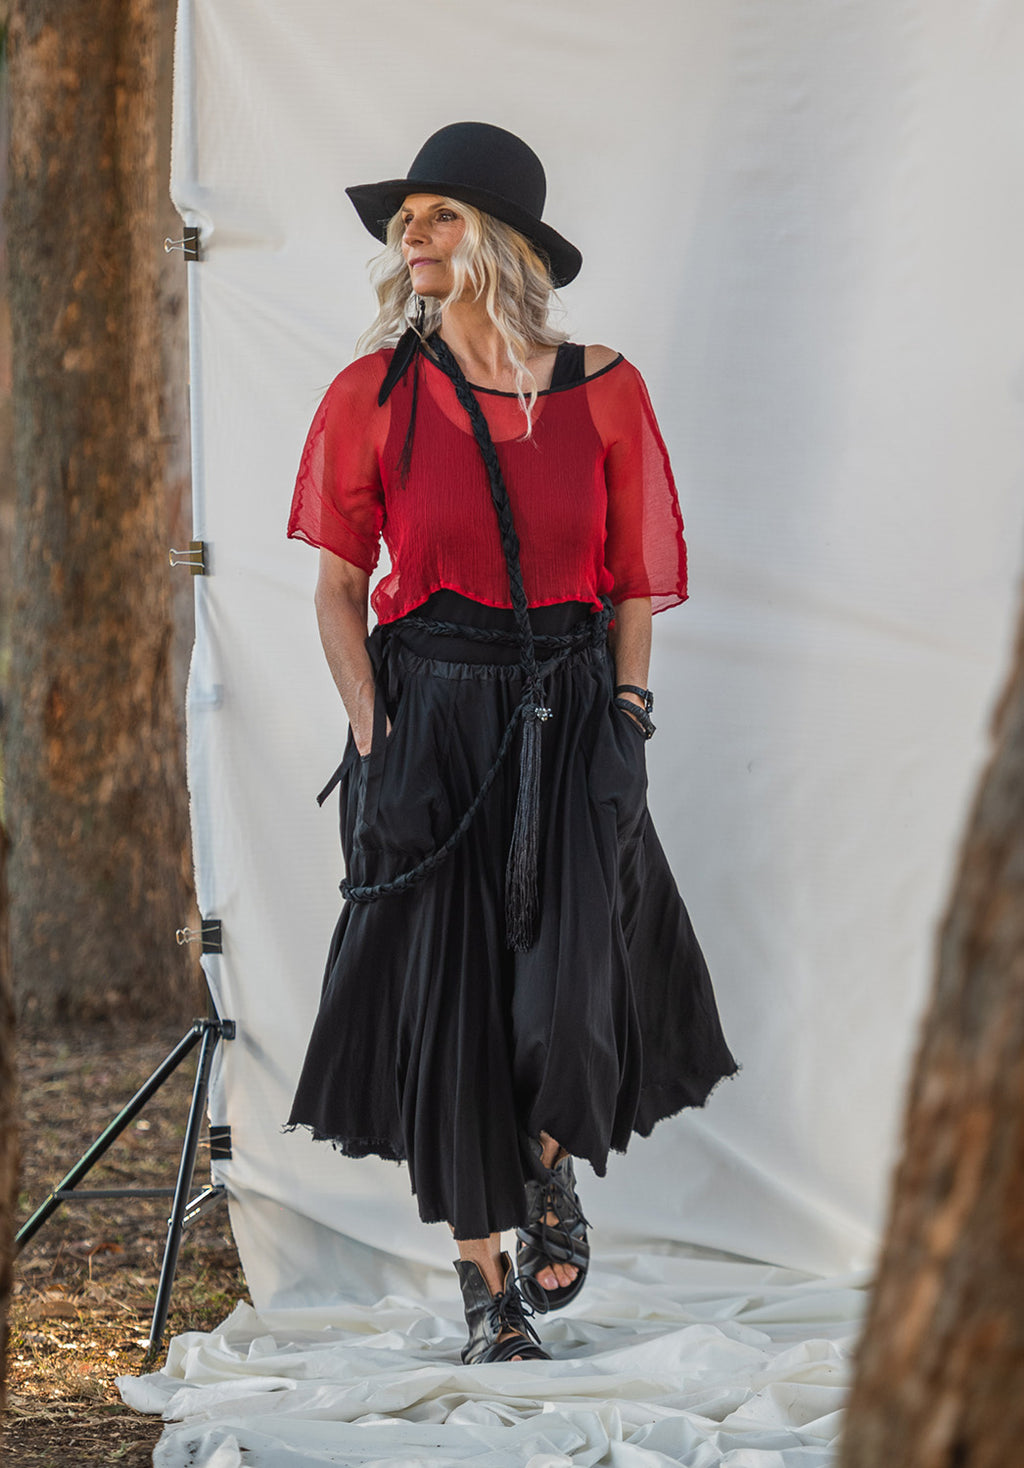 womens skirts online, eco fashion online, womens clothing australia, ethical fashion, womens skirts online, womens tops online, womens tops au